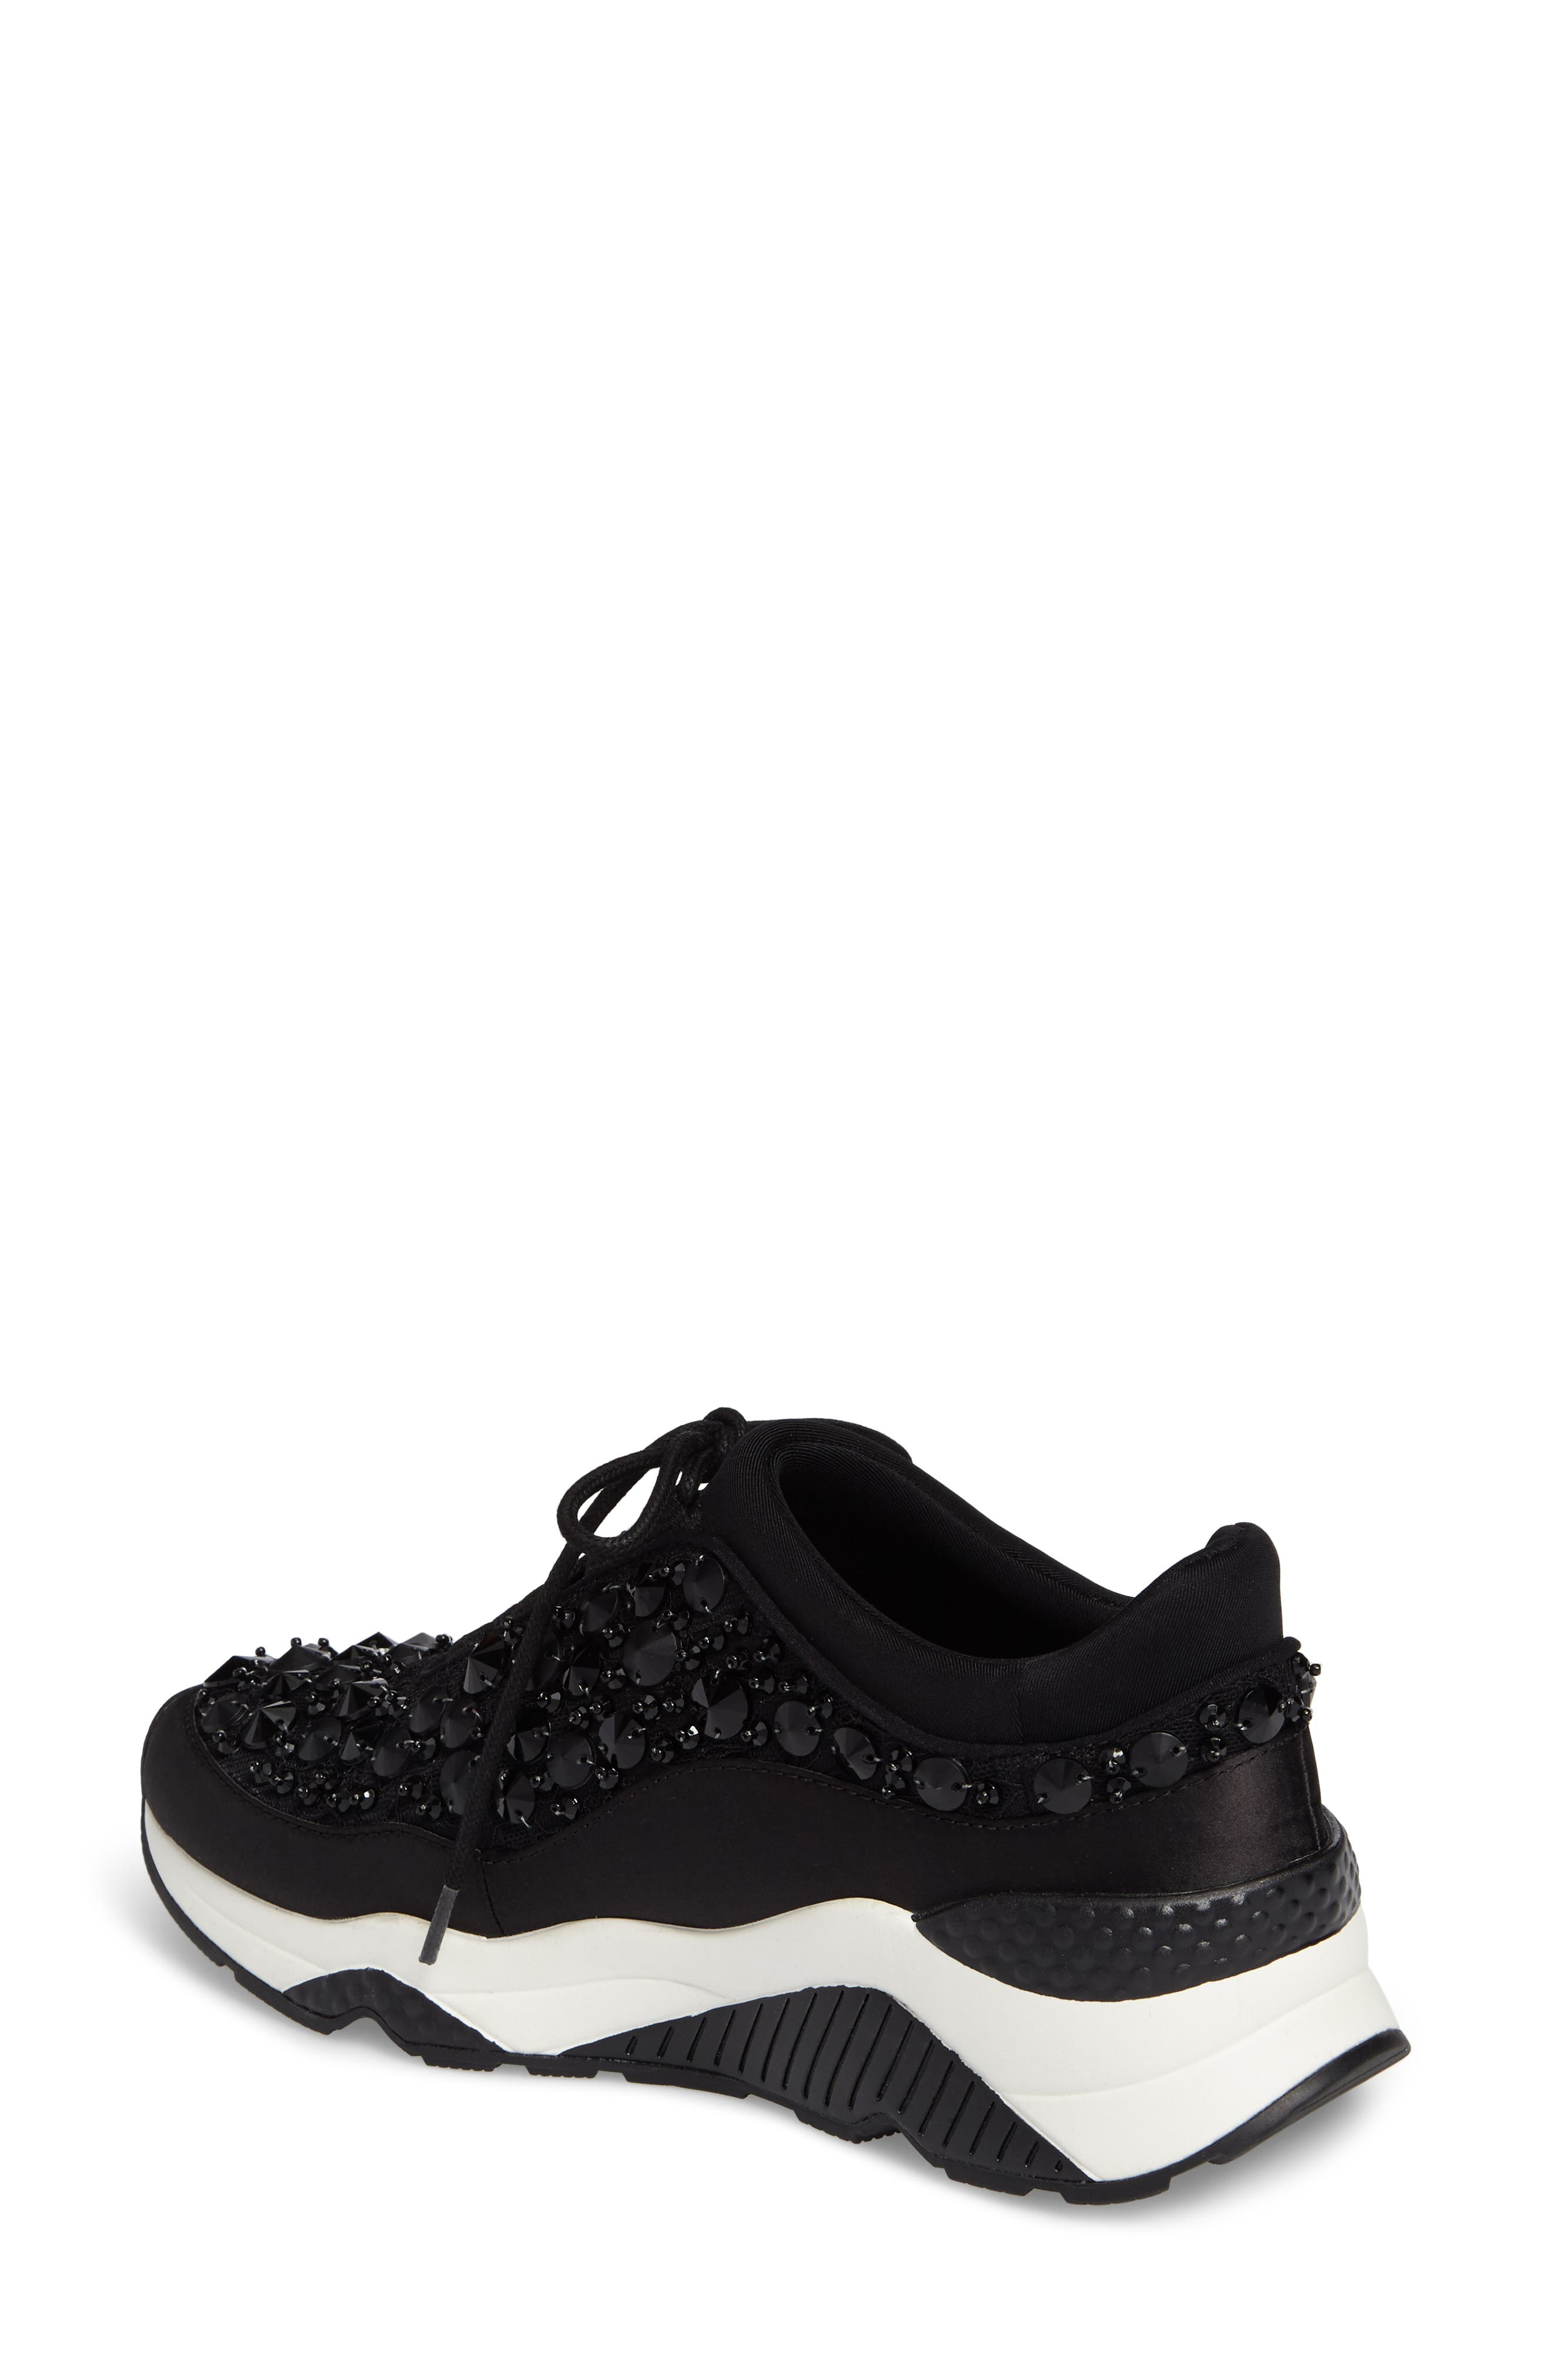 Muse Beads Sneaker,                             Alternate thumbnail 2, color,                             001